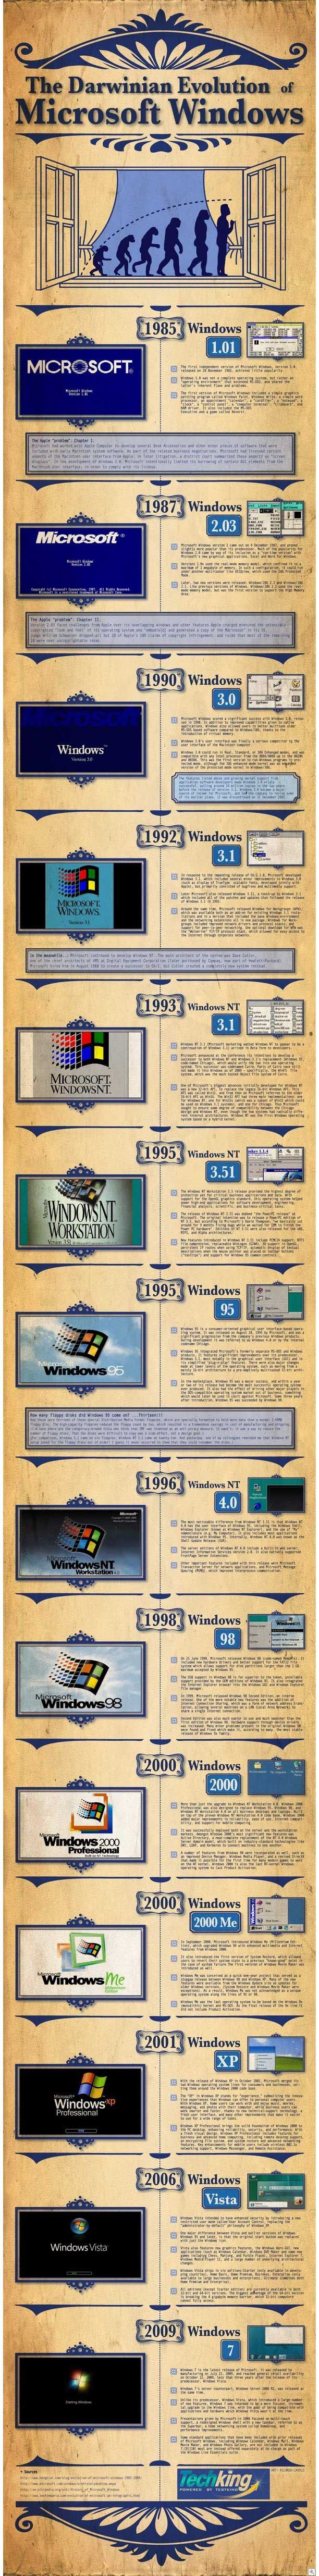 The Darwinian evolution of Microsoft Windows. #infografia #infographic